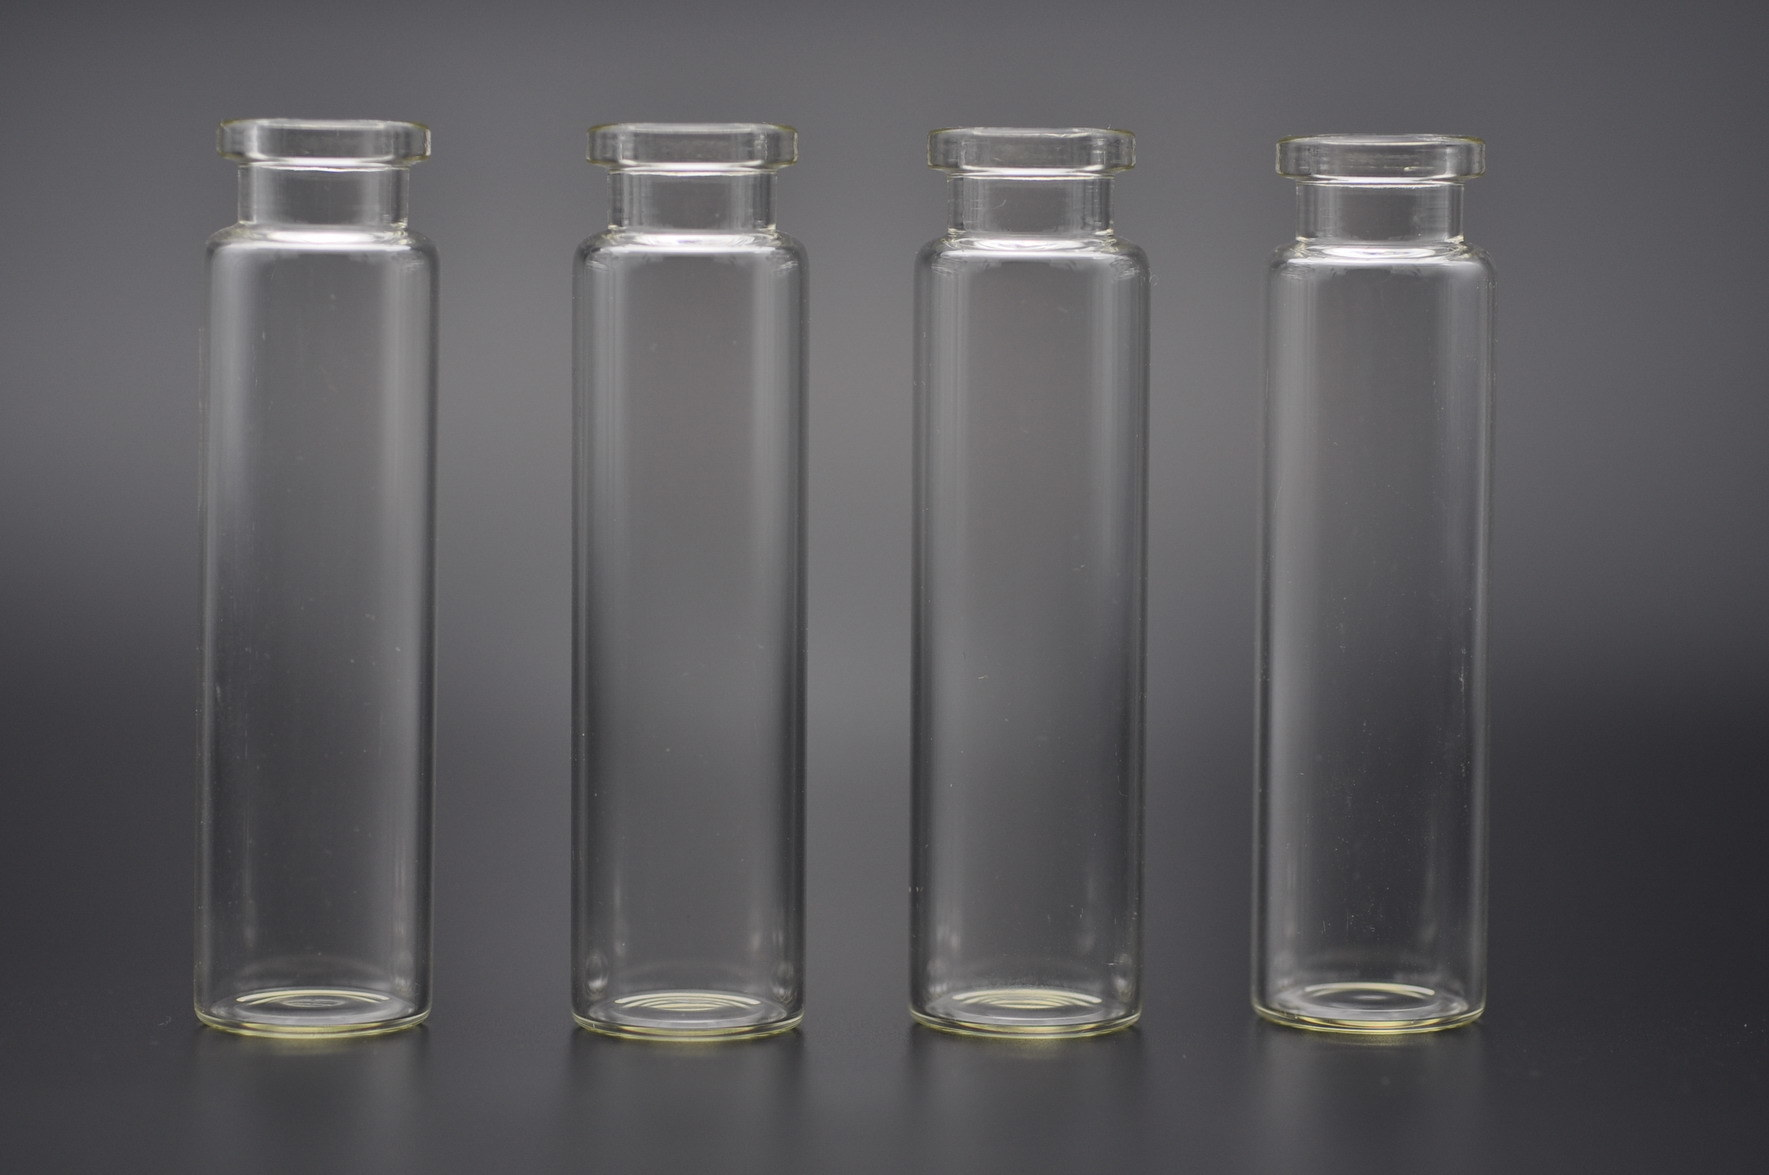 40ml Pharmaceutical Medical Glass Vials for Injection